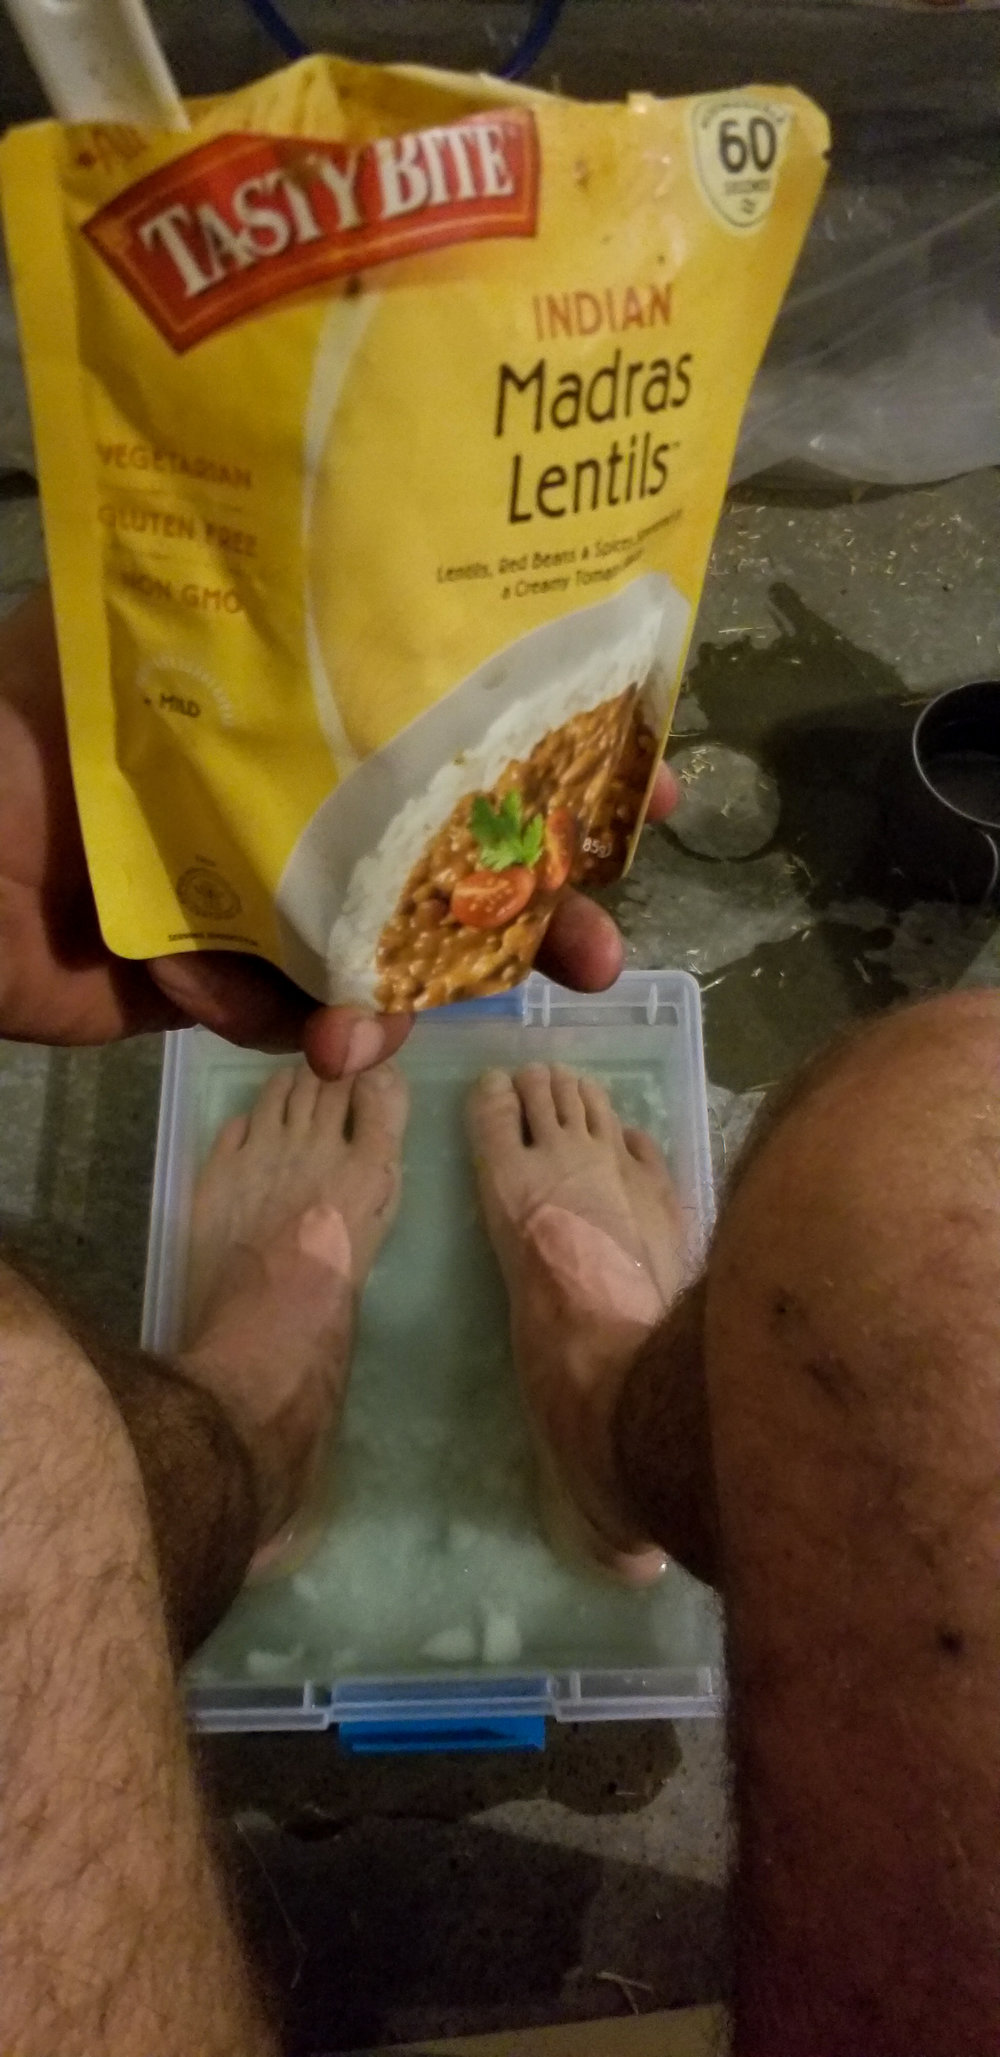 Tasty bite and instant Epsom Salt/Baking Soda/Listerine foot refreshing treatment for filthy feet. Perfection Achieved!